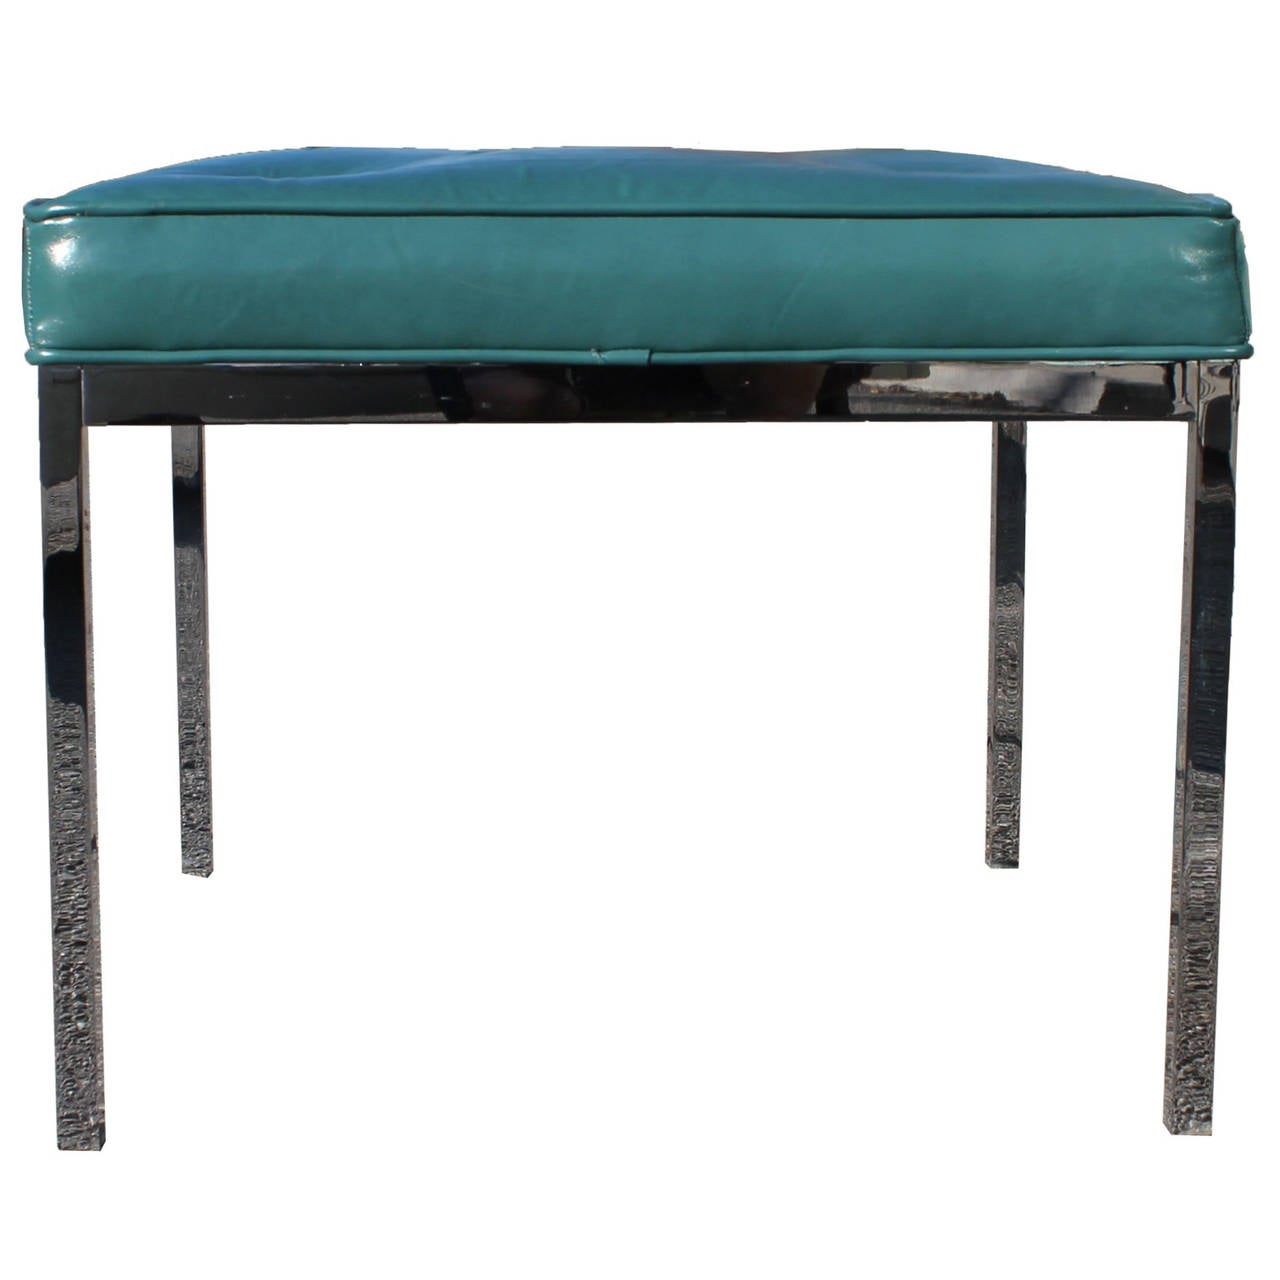 Teal Leather And Chrome Bench Ottoman At 1stdibs